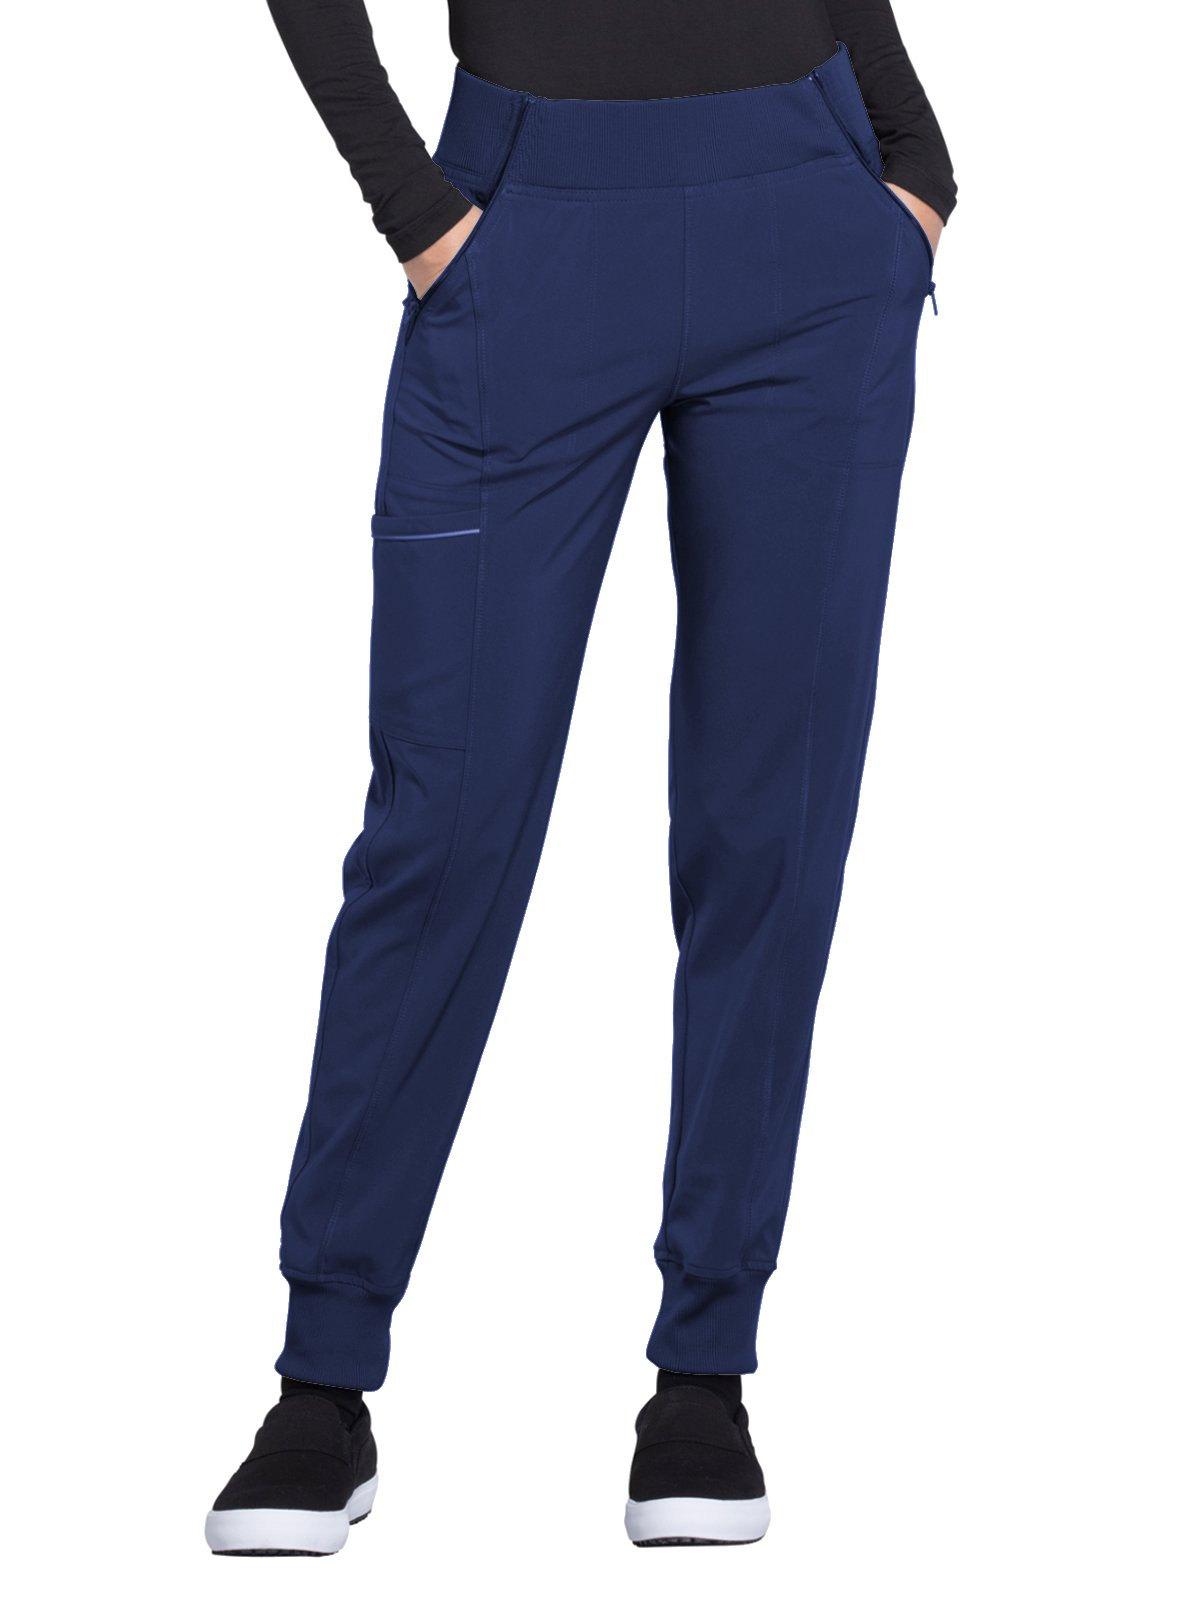 Cherokee Infinity CK110A Mid Rise Tapered Leg Jogger Pant Navy 3XL by Cherokee